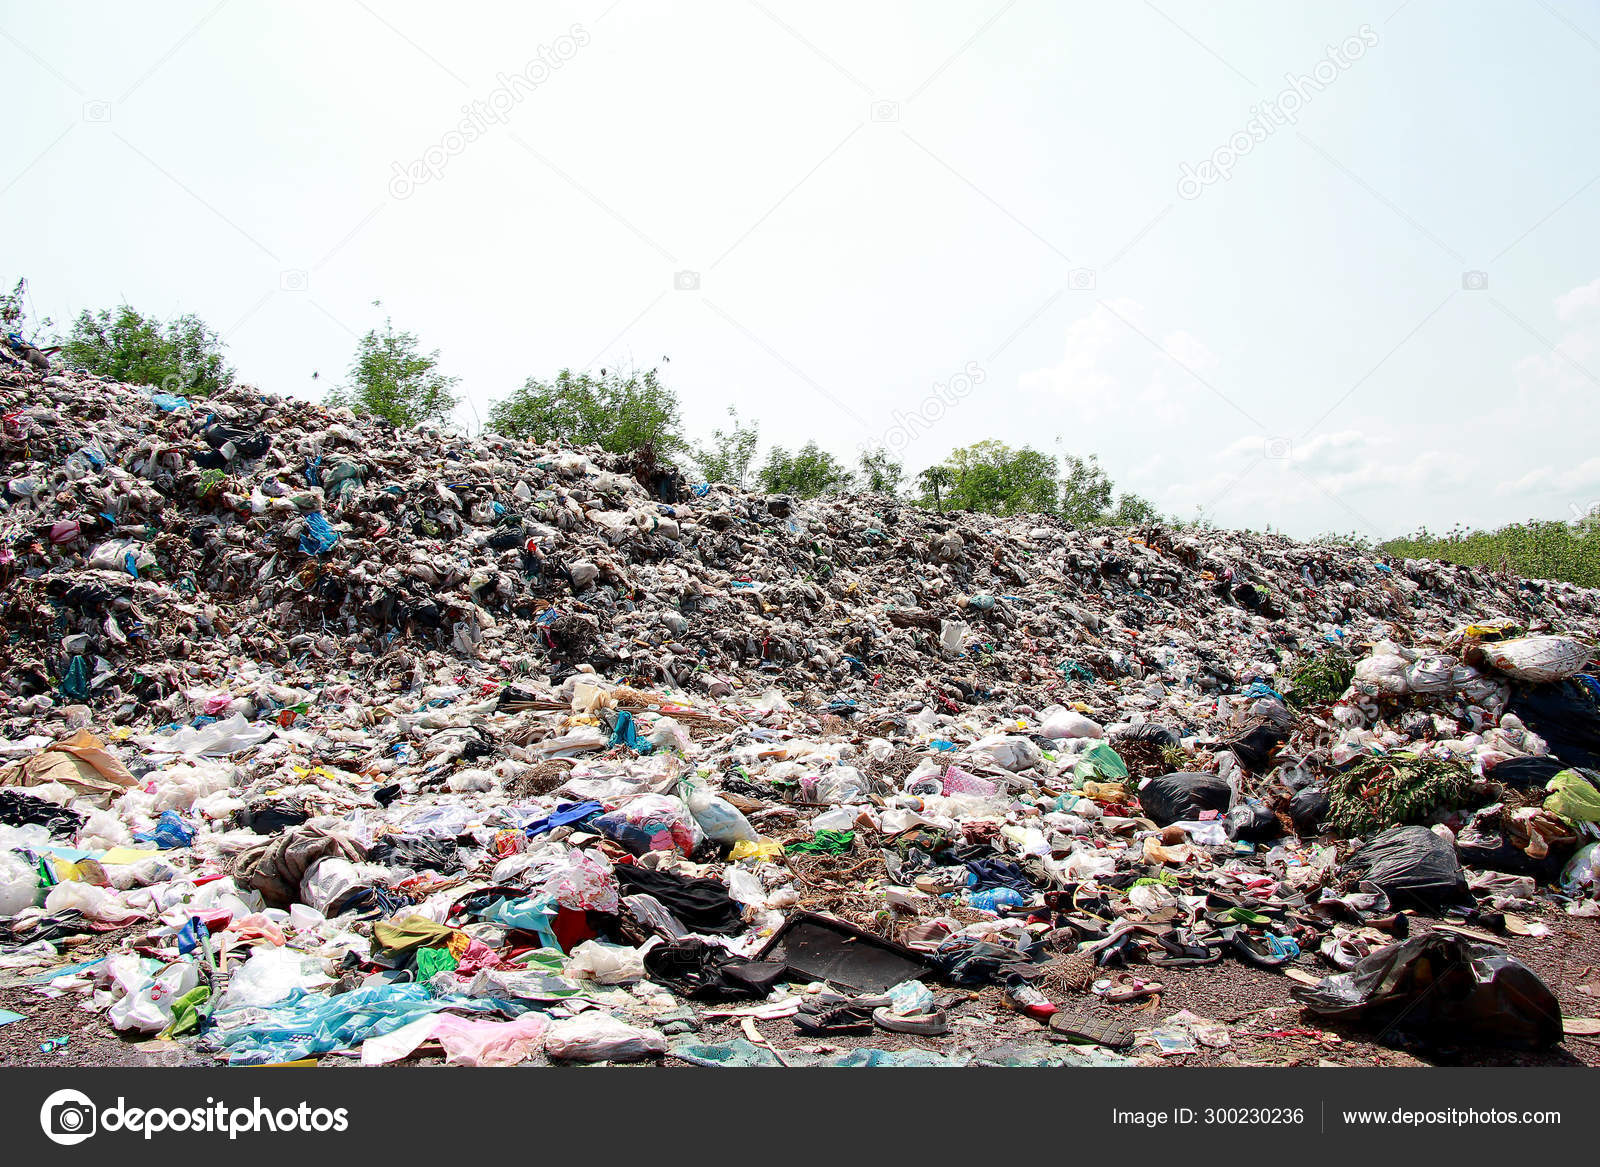 Mountain garbage, large and degraded garbage pile, Pile of stink and toxic residue, waste plastic bottles and other types of plastic waste site in trash dump or landfill. Pollution concept.